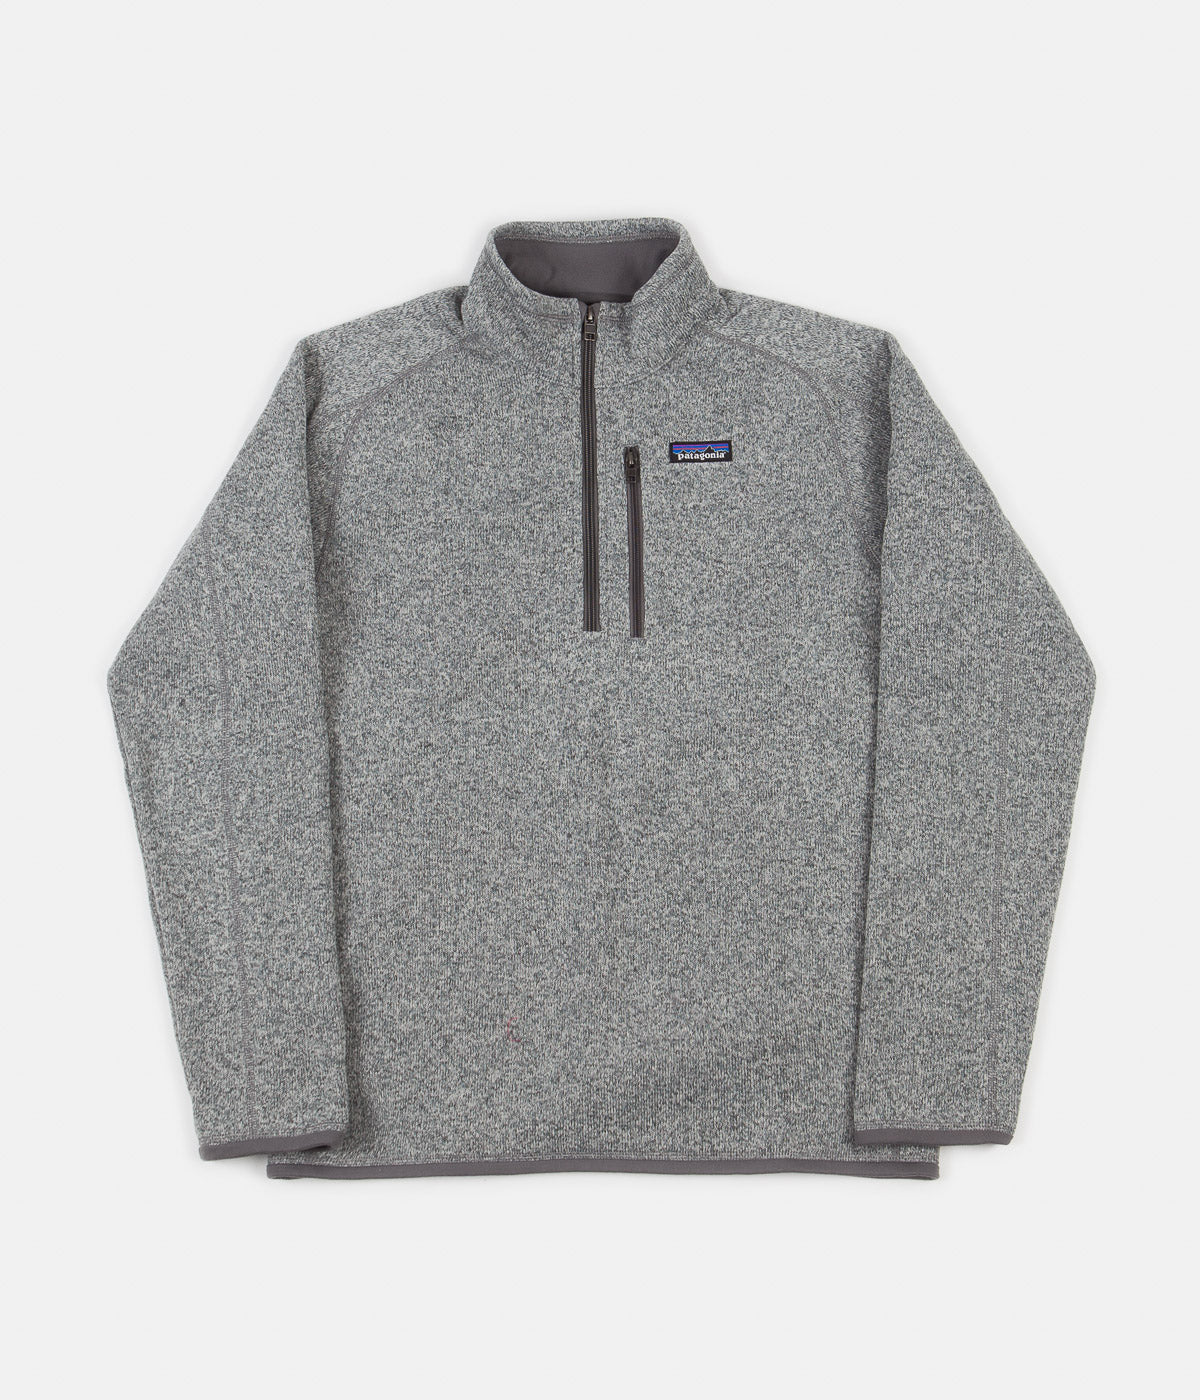 Patagonia Better Sweater 1/4 Zip Sweatshirt - Stonewash